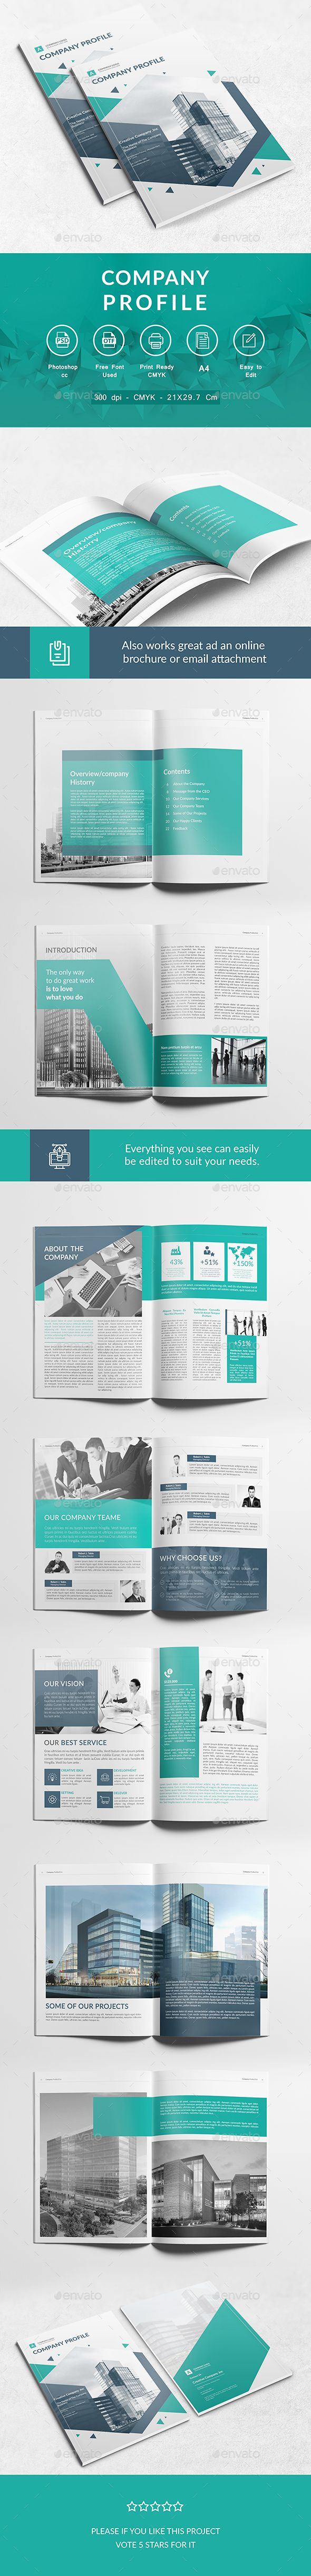 3590 best ☆~layout 1~☆ images on pinterest | graphics, page, Presentation templates